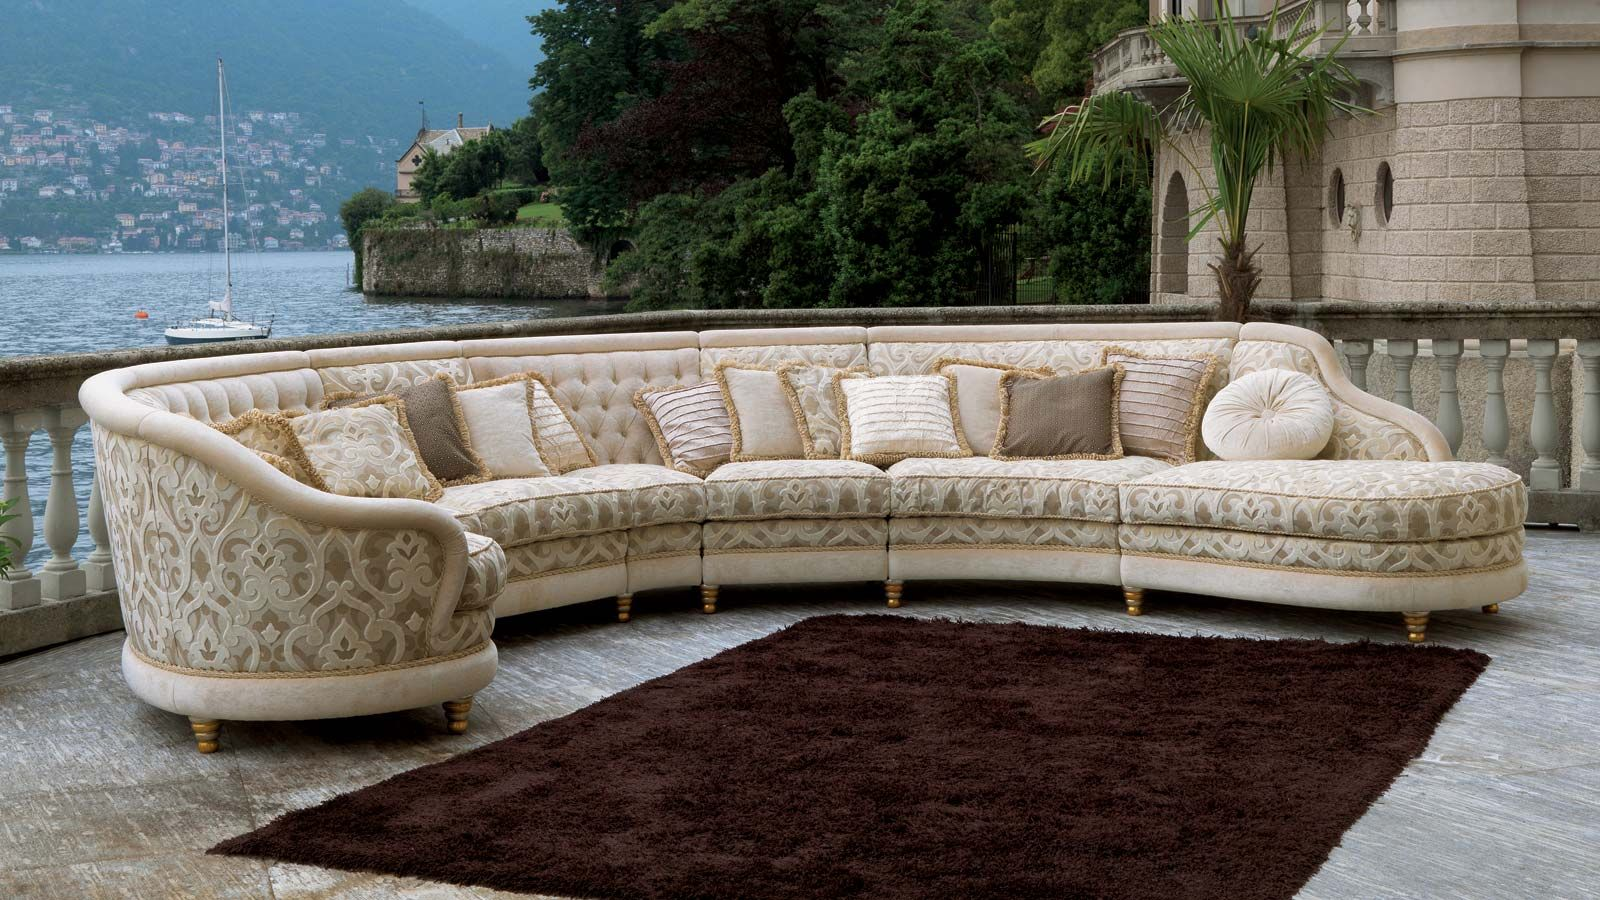 Italian Furniture Stores: Corner Sofa - Google Search